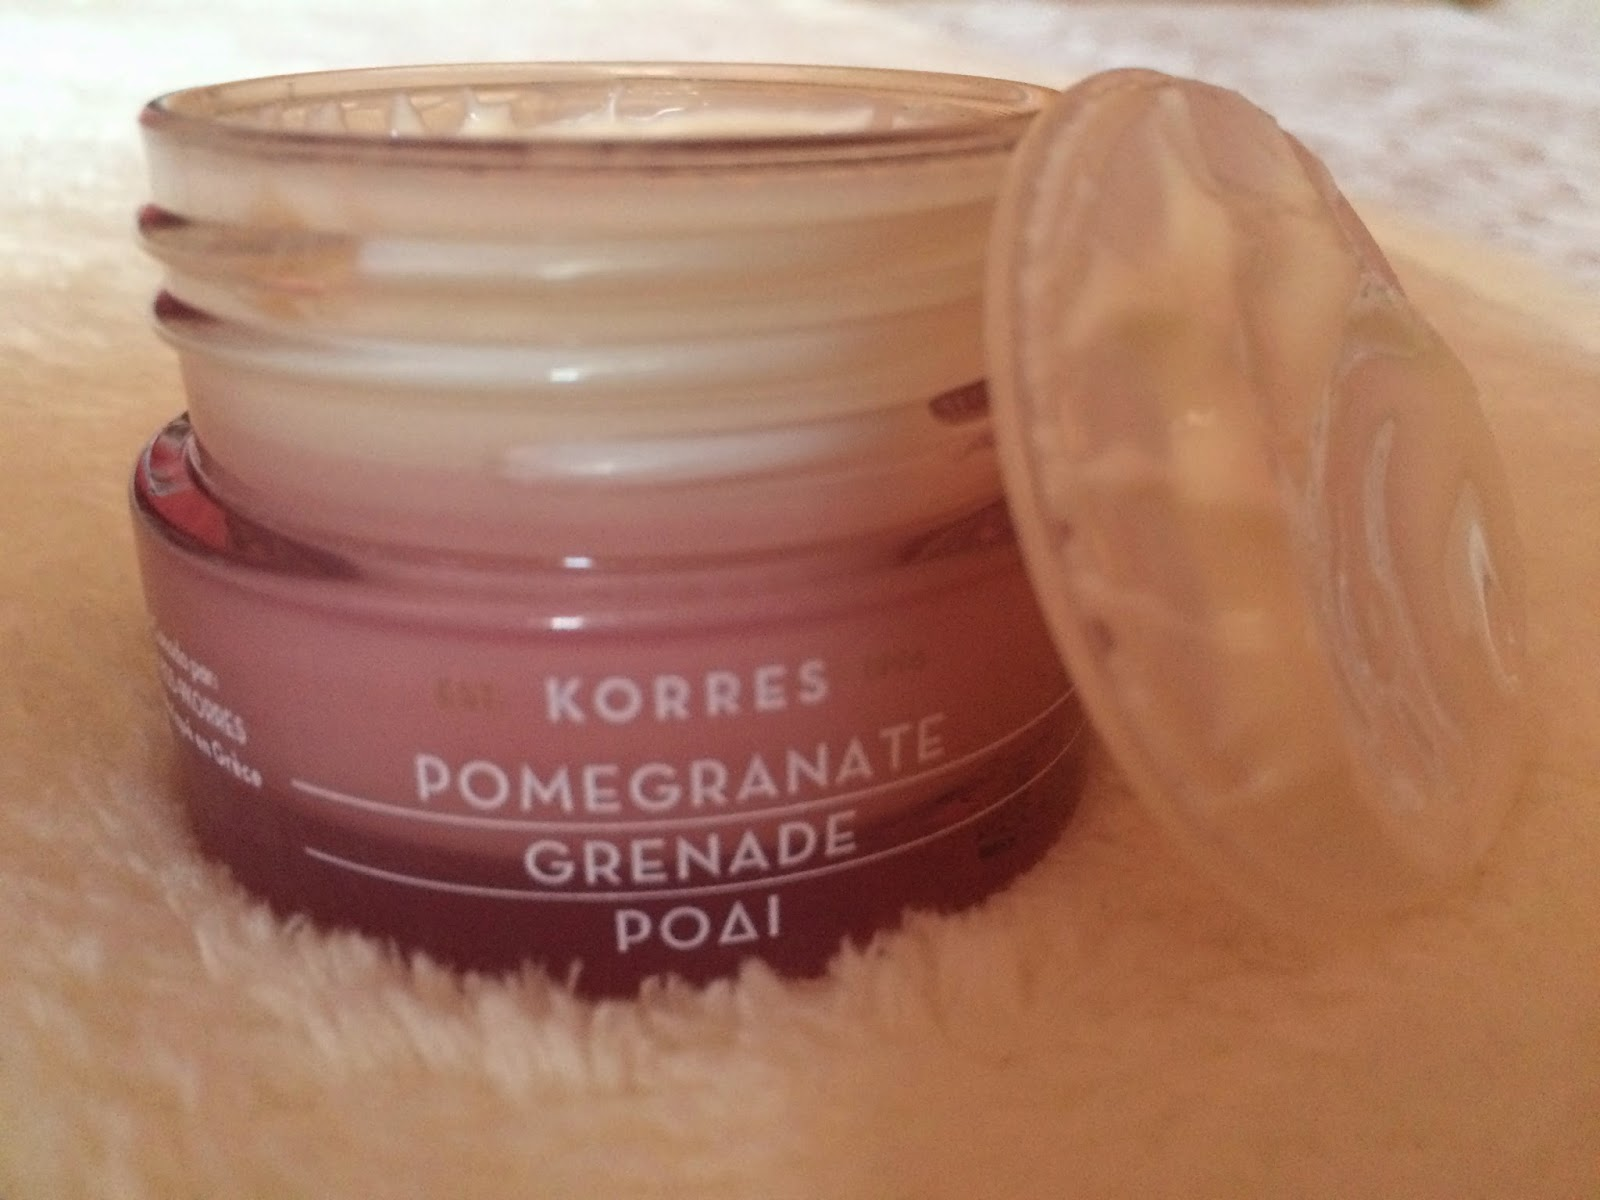 pomegranate moisturising cream gel by Korres review bubblybeauty135